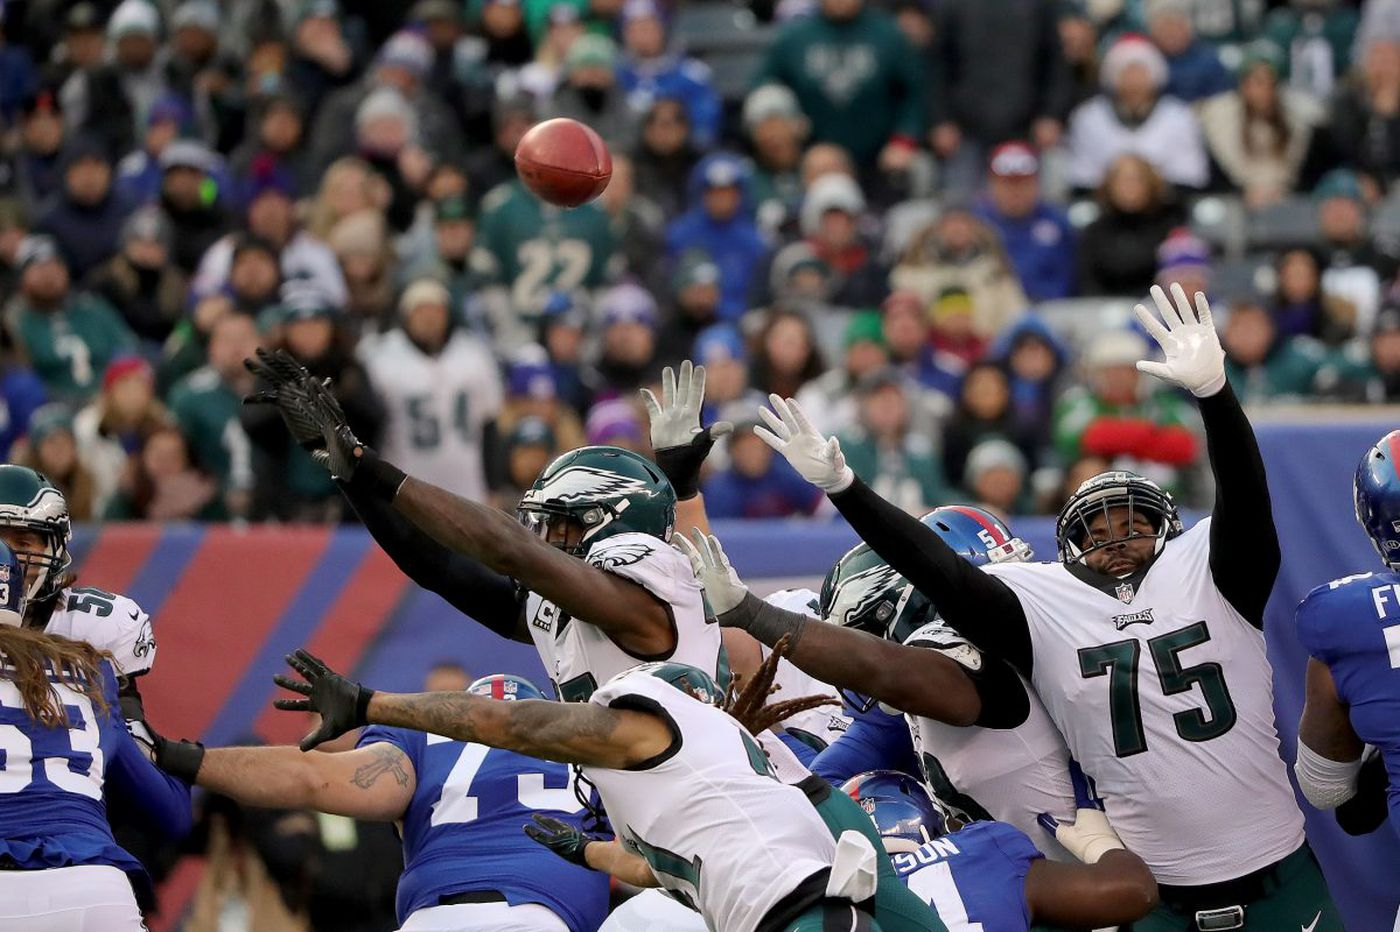 Nick Foles looks good and Eagles have a playoff bye, but also reasons for concern | Early Birds